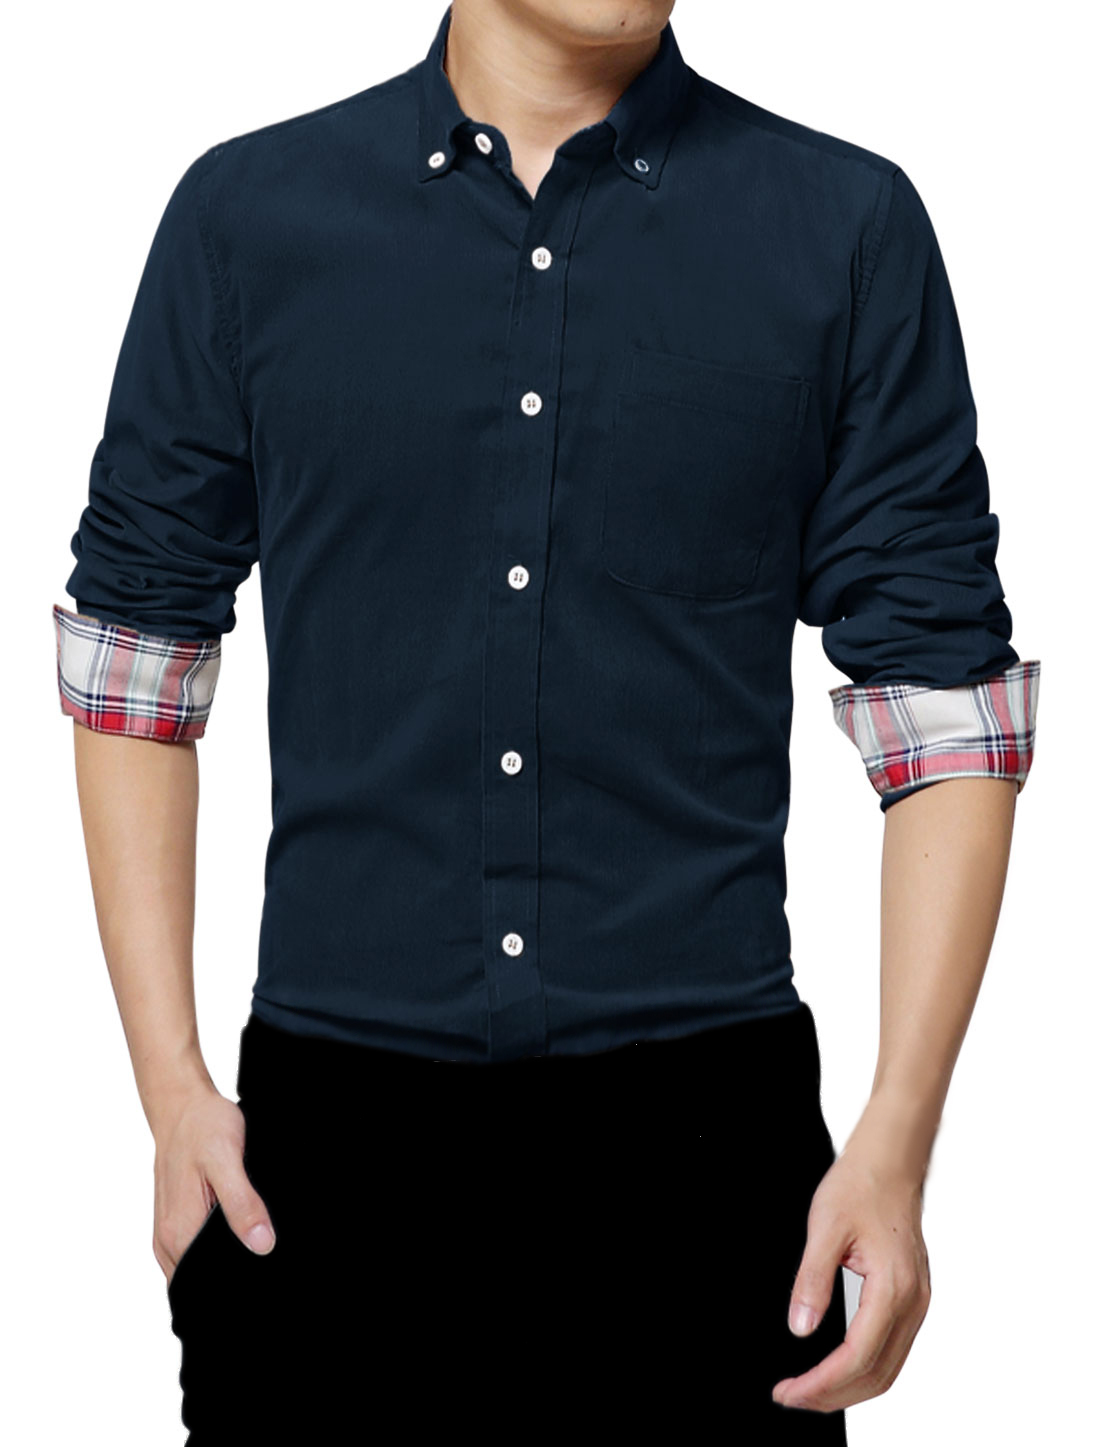 Man Leisure Design Long Sleeve Point Collar Navy Blue Corguroy Shirt M